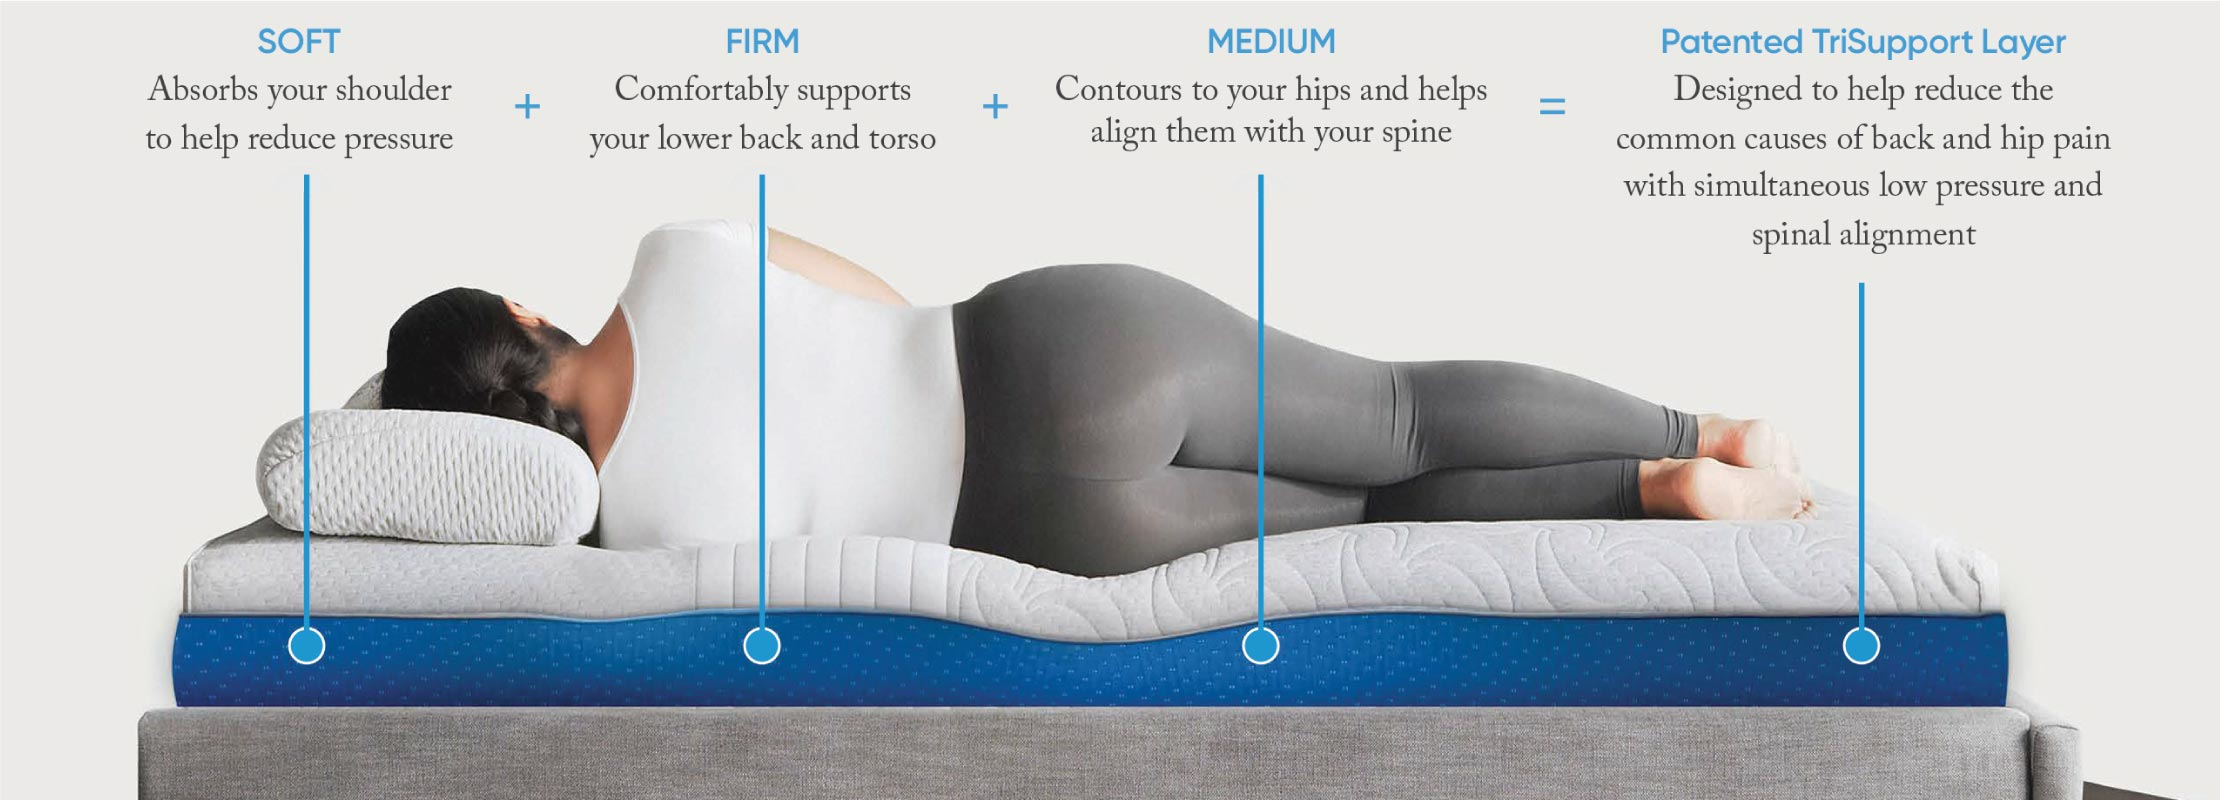 Woman laying on her side on a Level mattress. Patented TriSupport Layer: soft at the head, firm around the lower back and torso, medium at the hips.